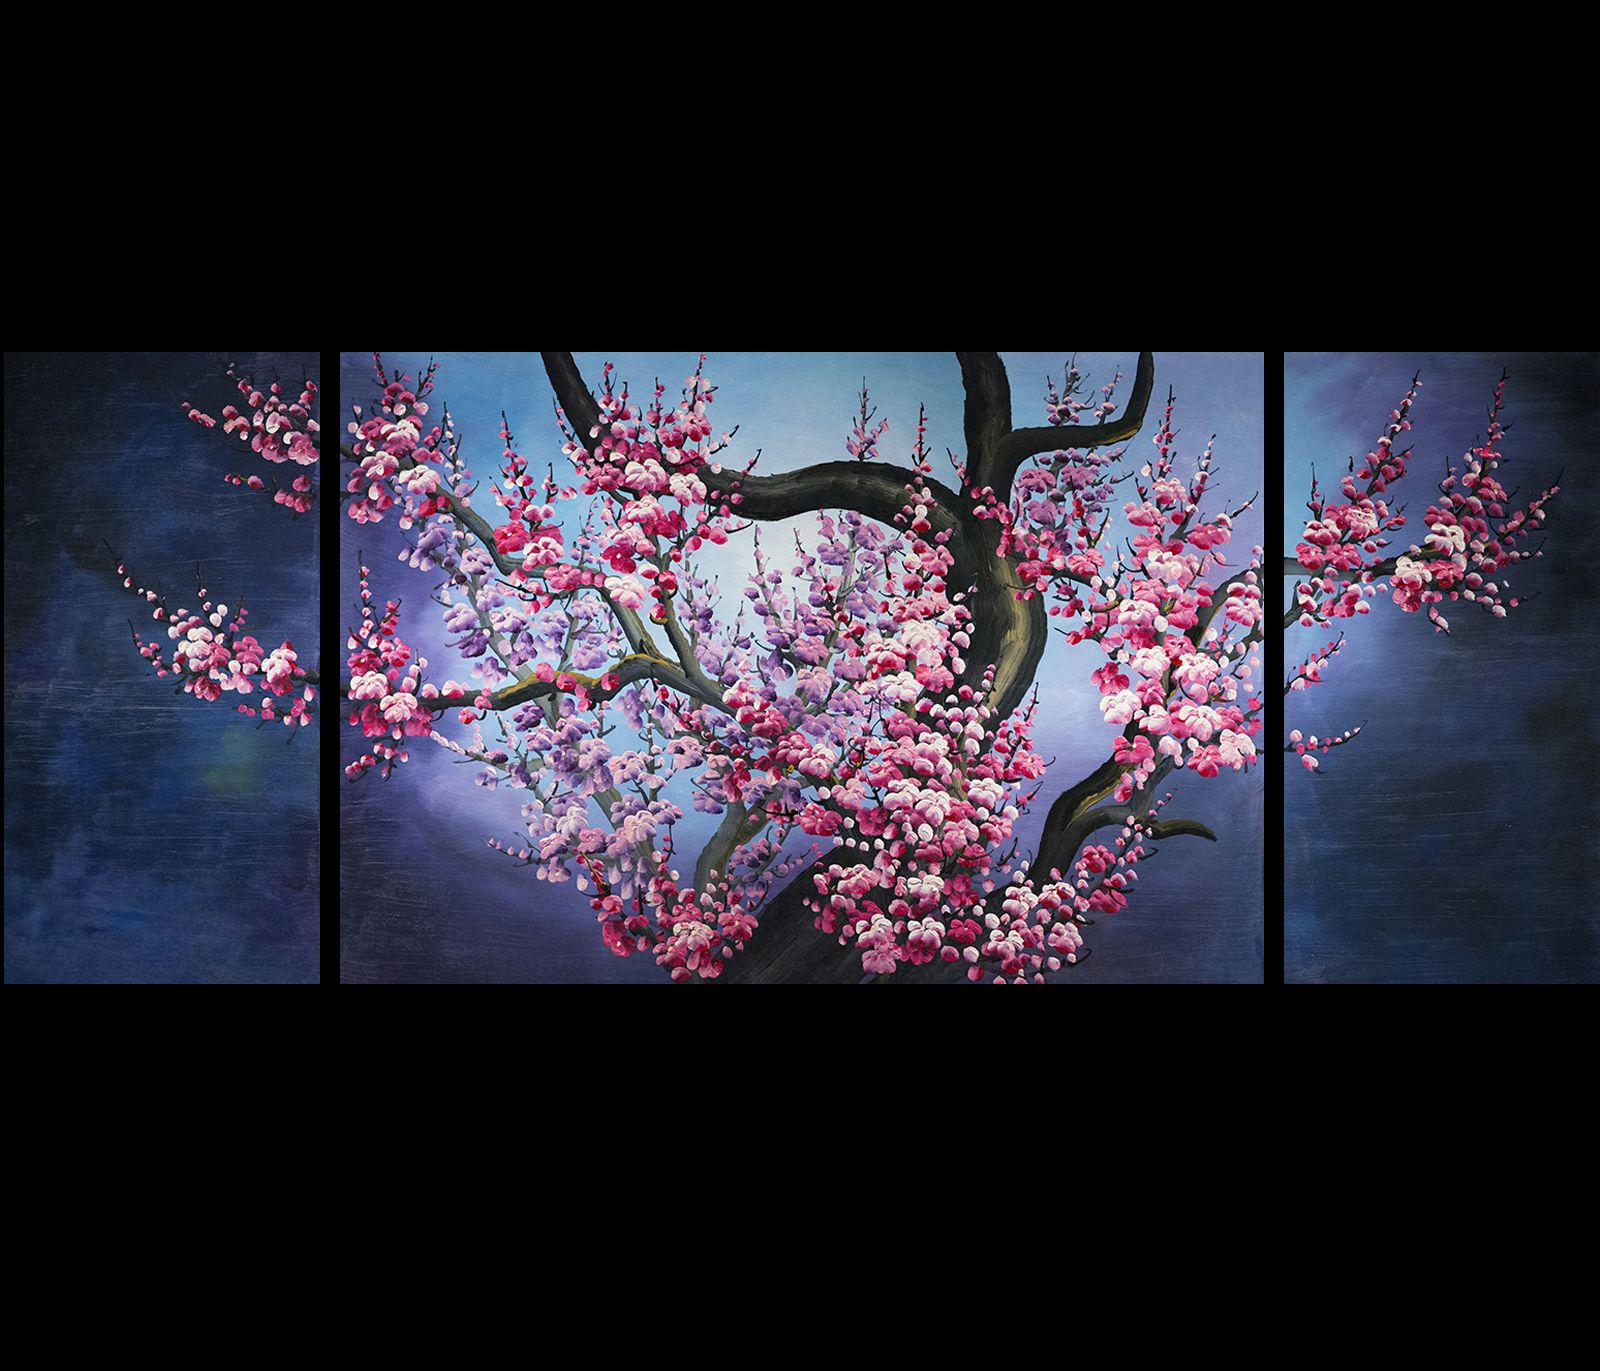 Exceptional Japanese Cherry Blossom Painting Abstract Art Canvas Wall Art Part 18